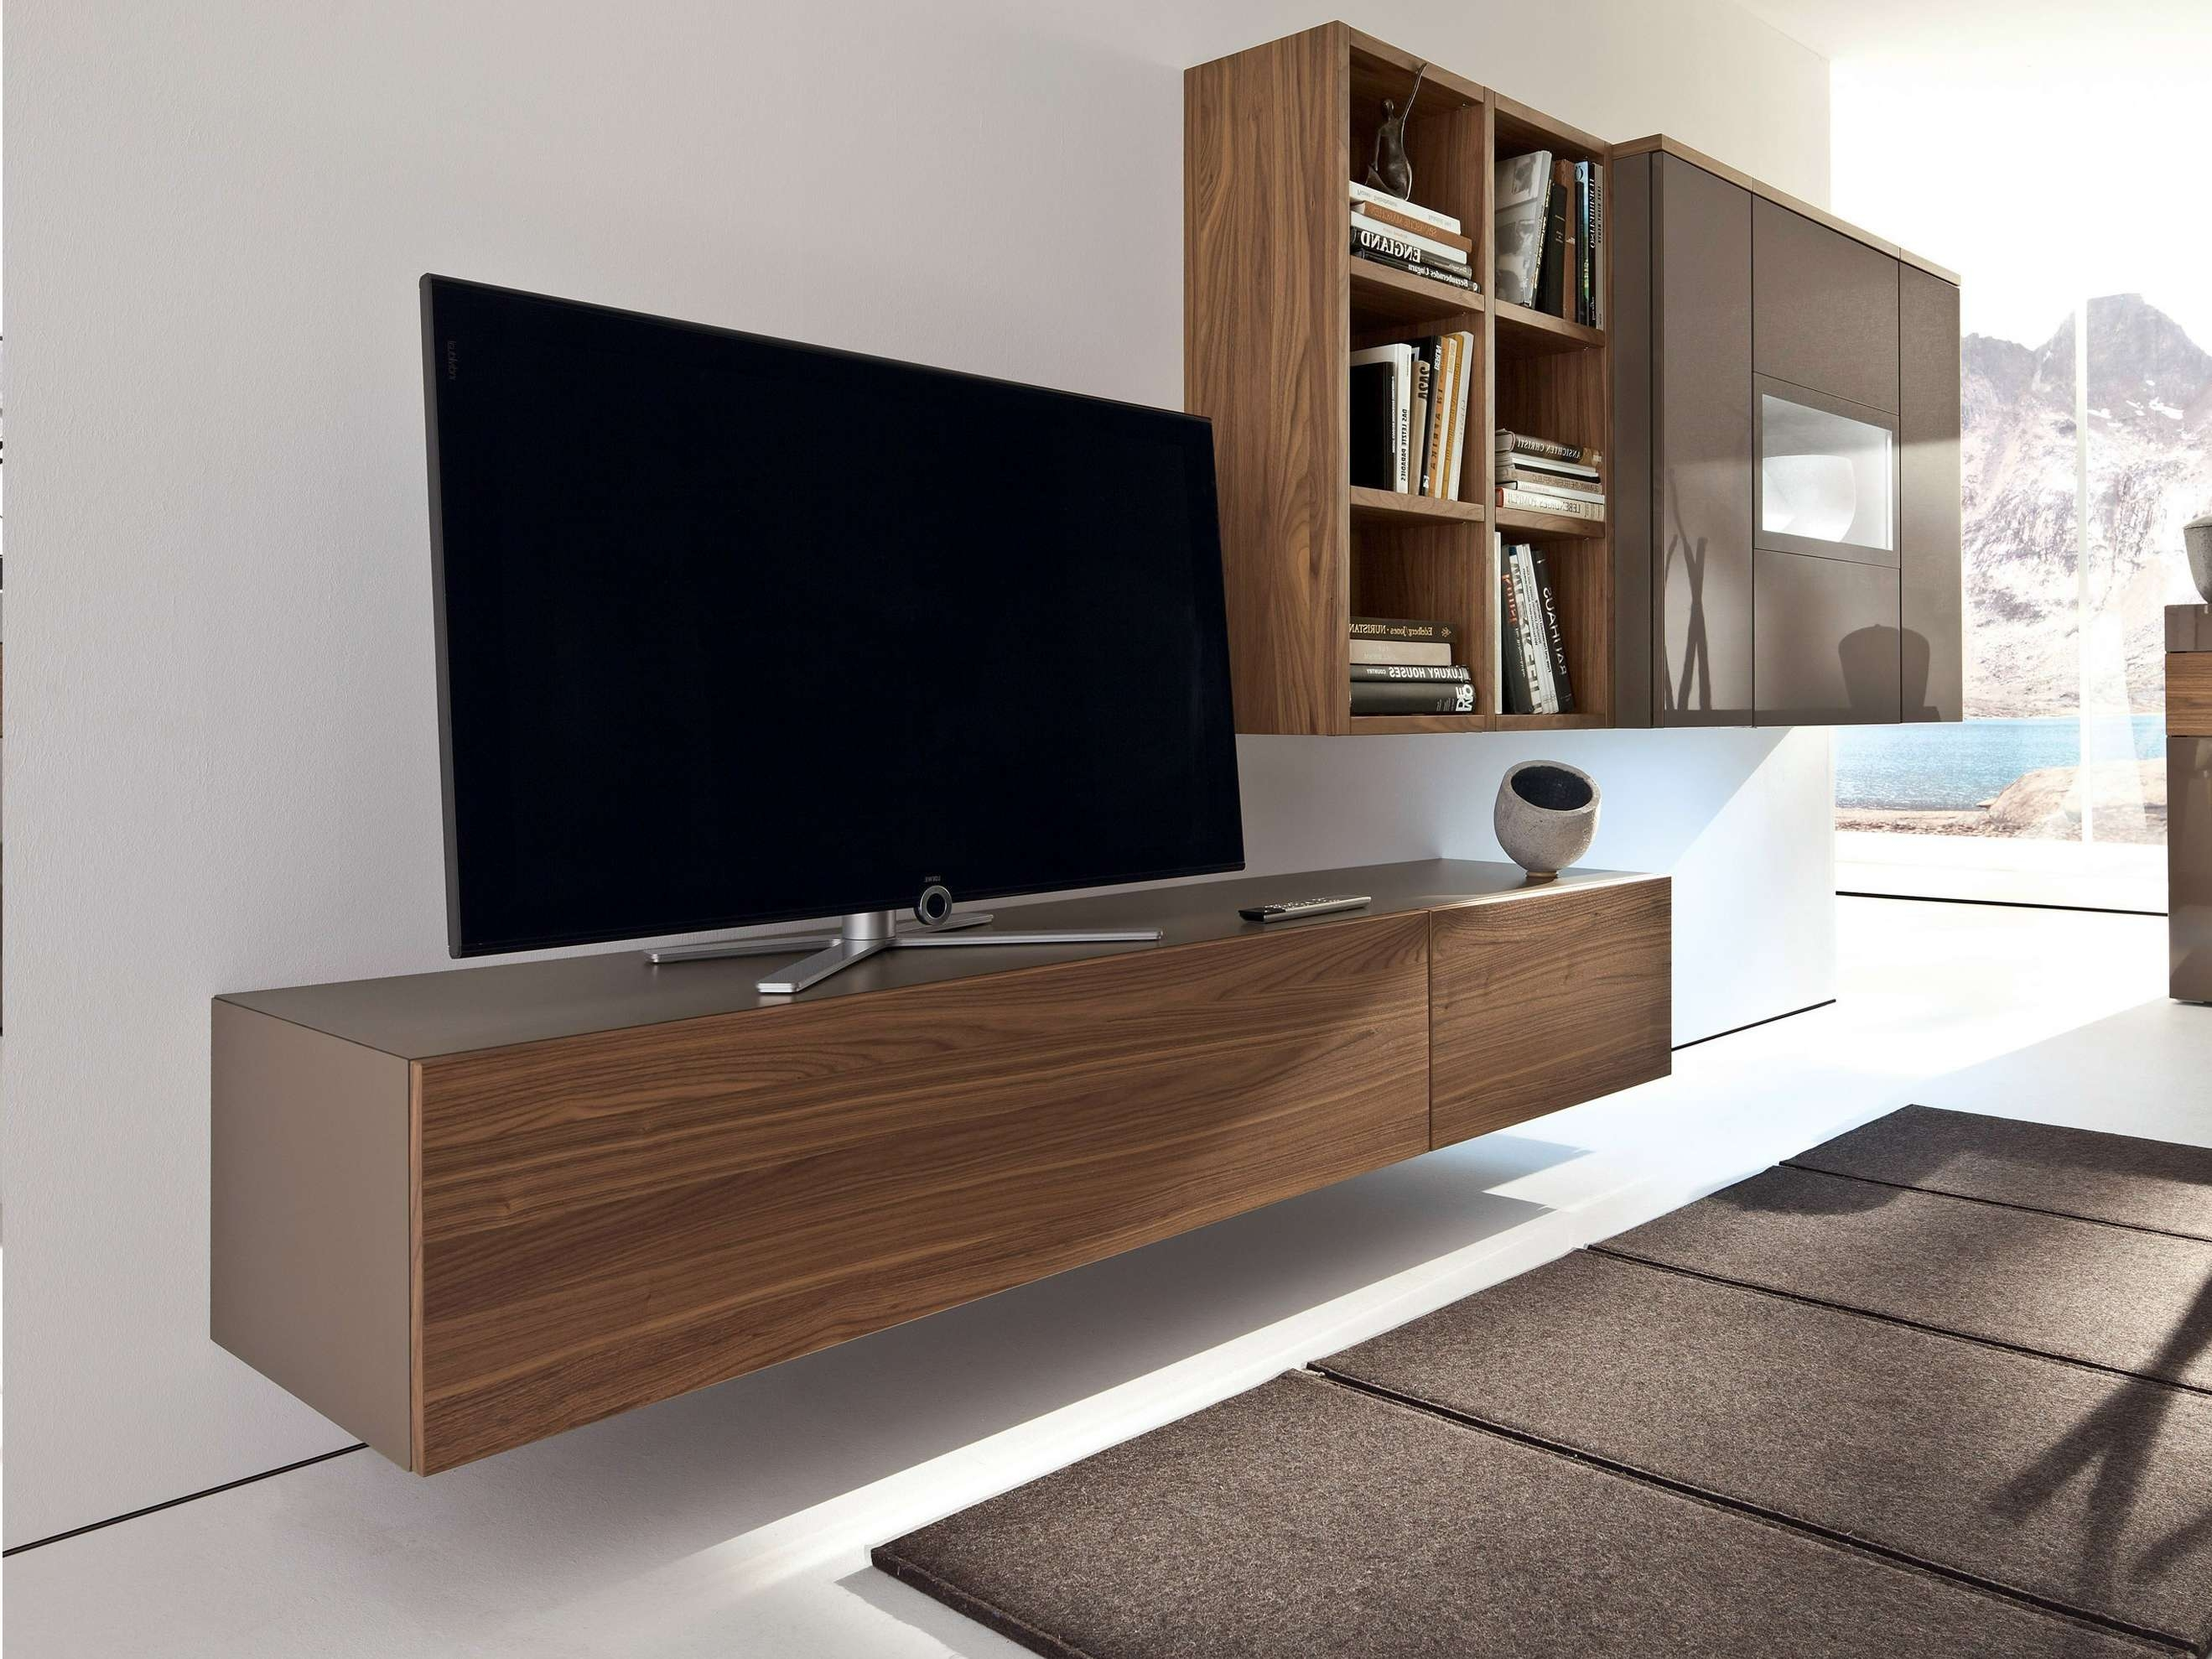 Wall Mounted Media Cabinet With Doors Brown Ebony Hardwood Within Modern Low Profile Tv Stands (View 20 of 20)